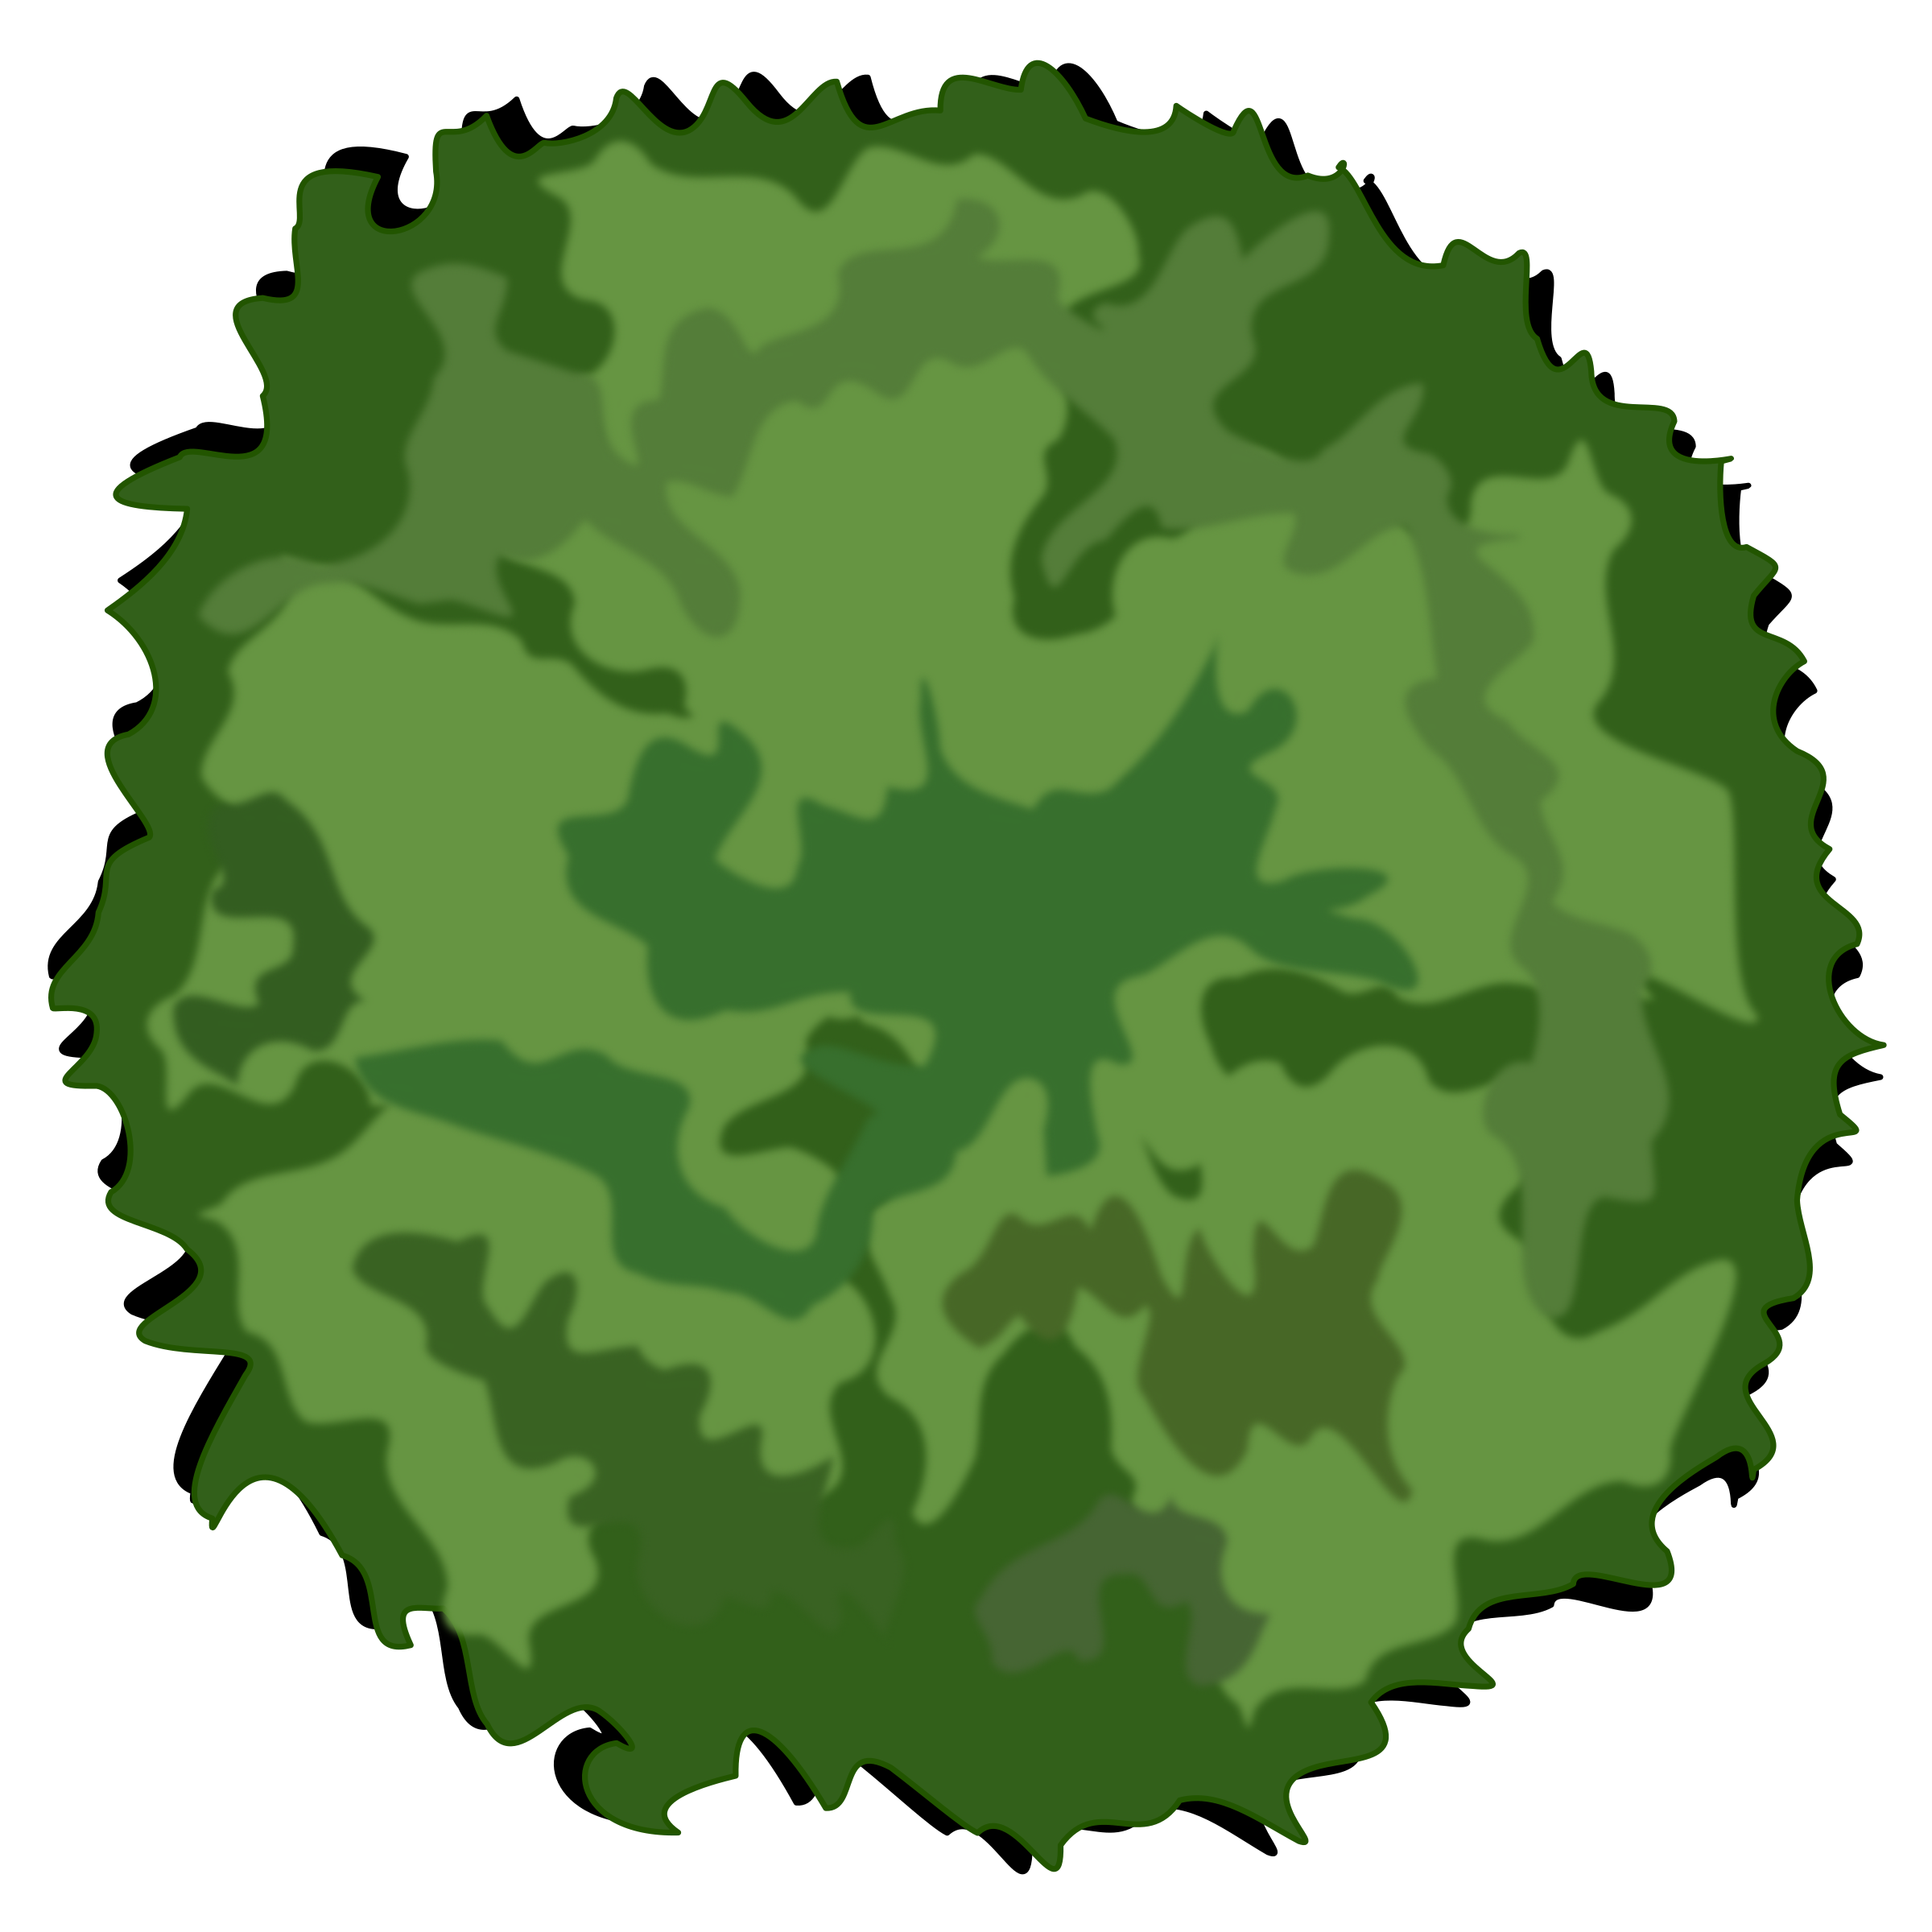 Treetop Outline - ClipArt Best